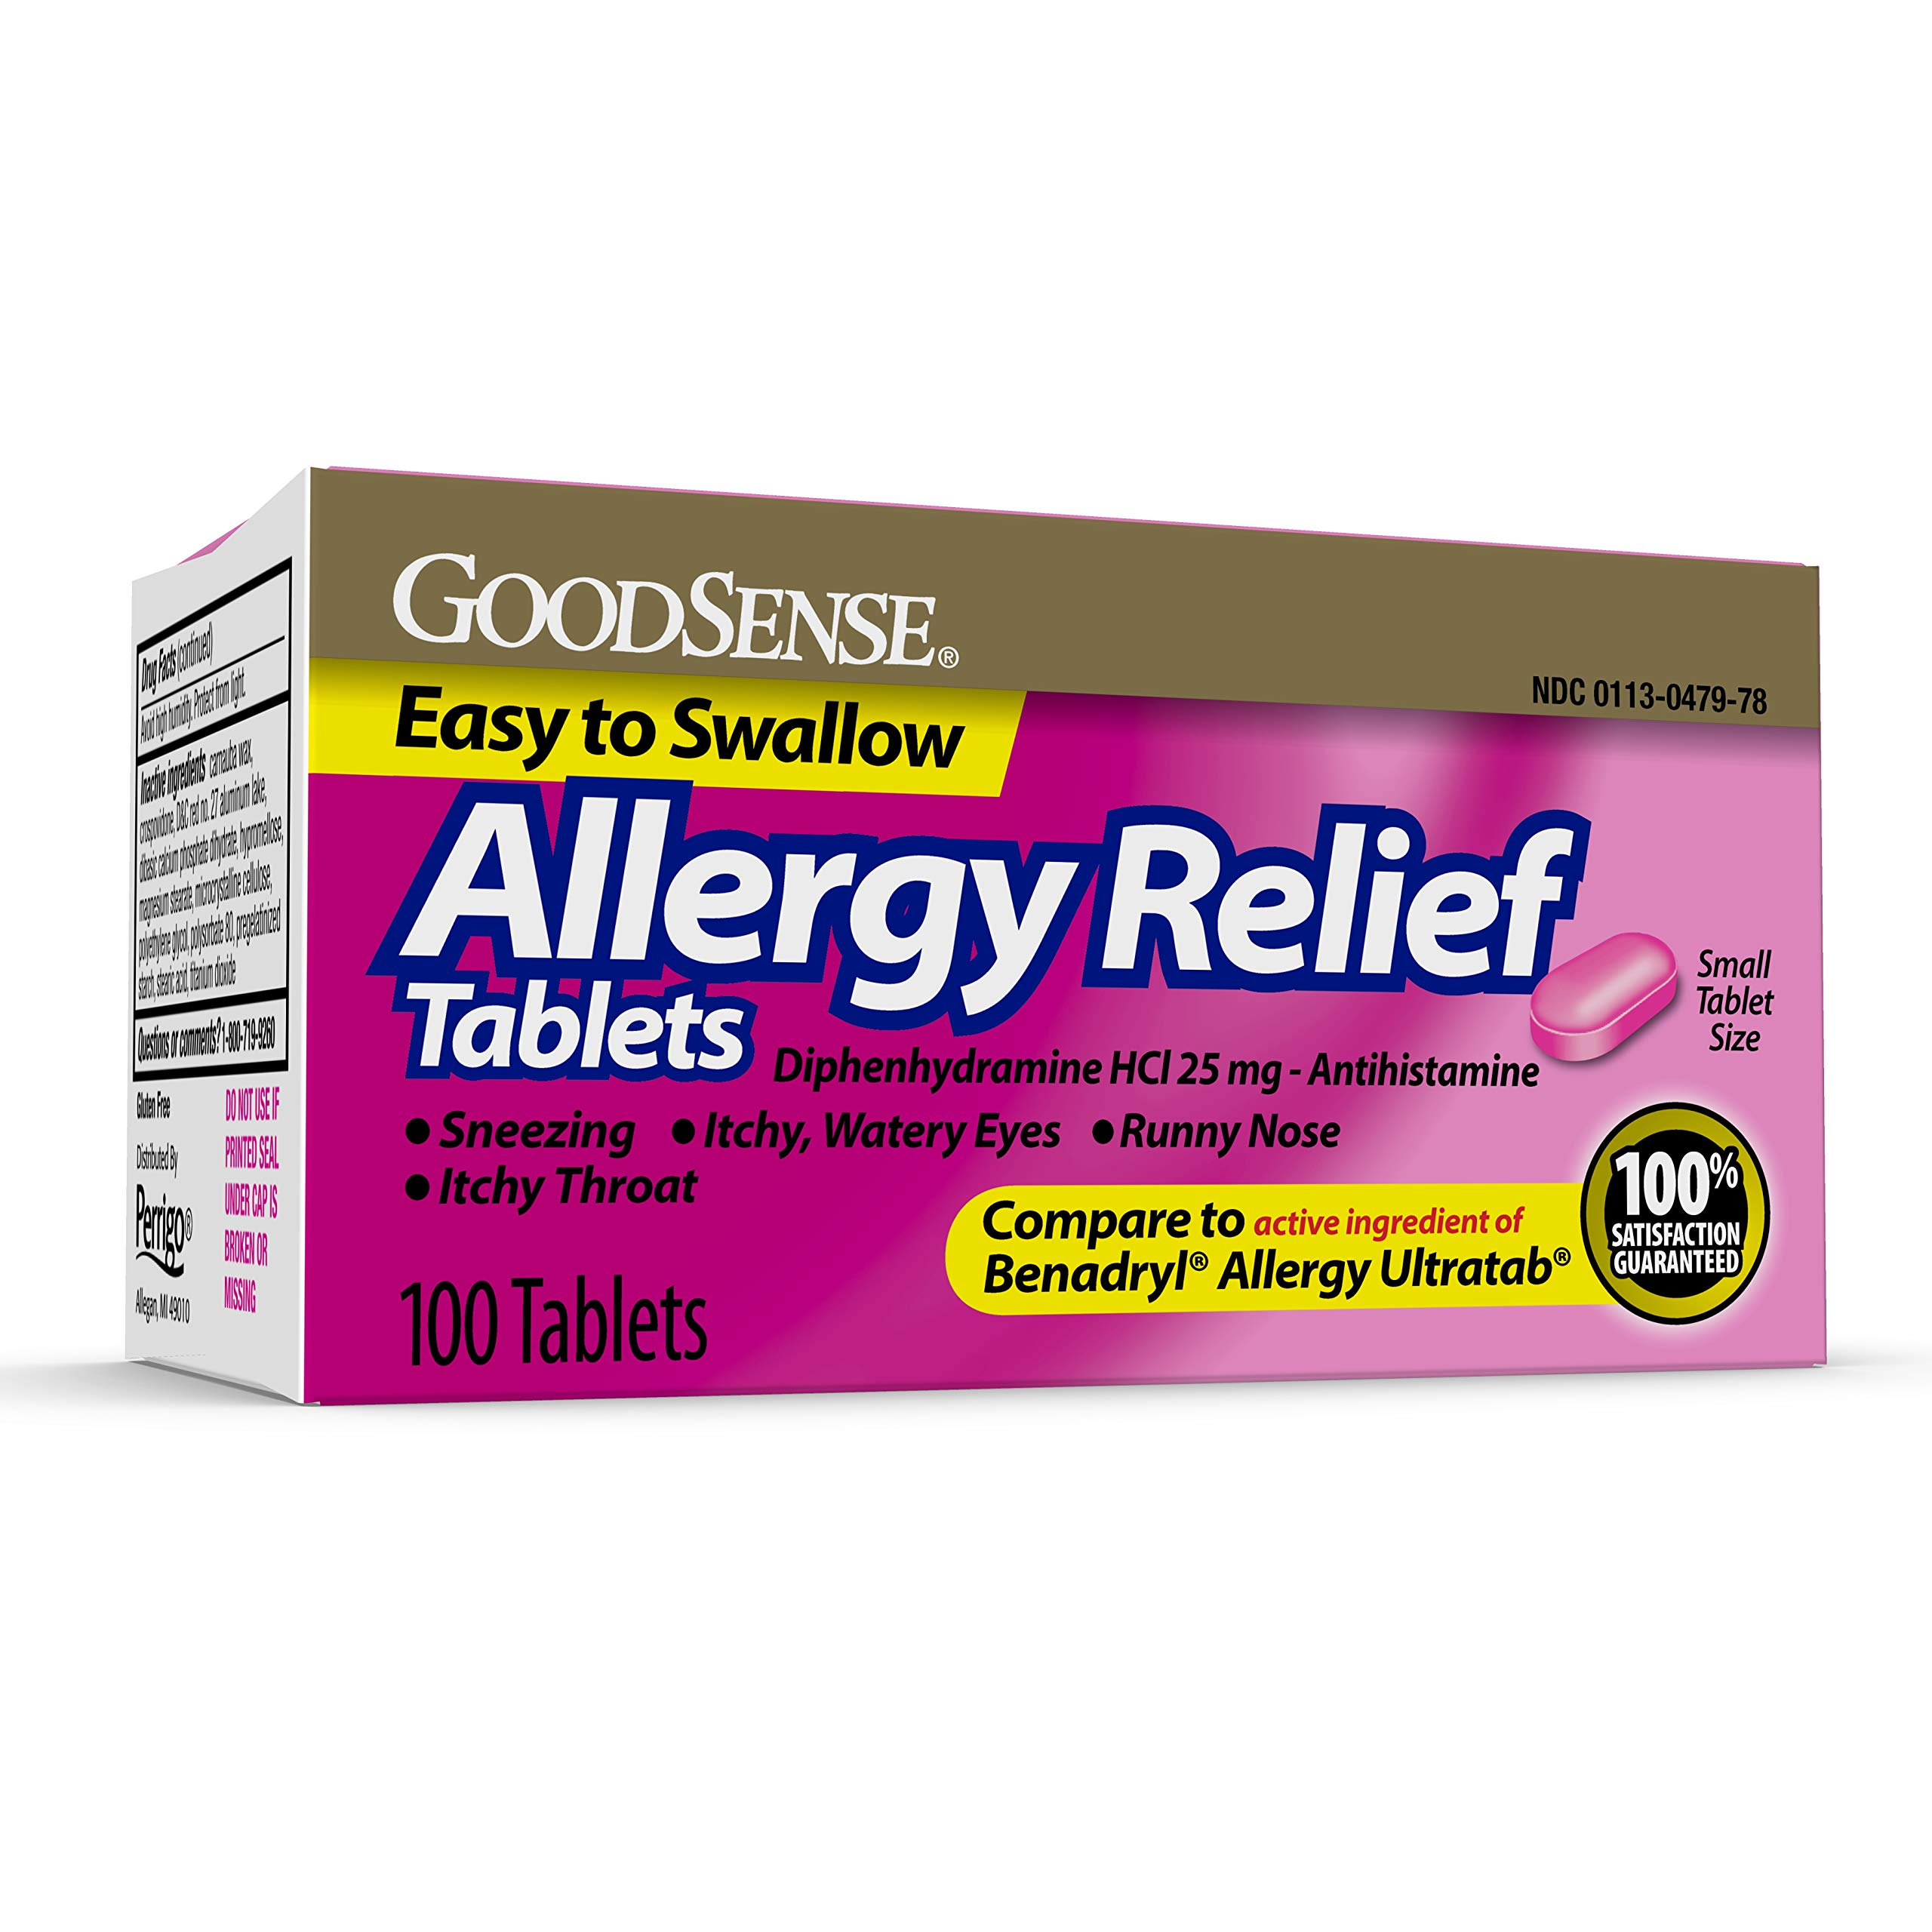 GoodSense Allergy Relief, Diphenhydramine HCl Tablets 25 mg, Antihistamine, 100 Count